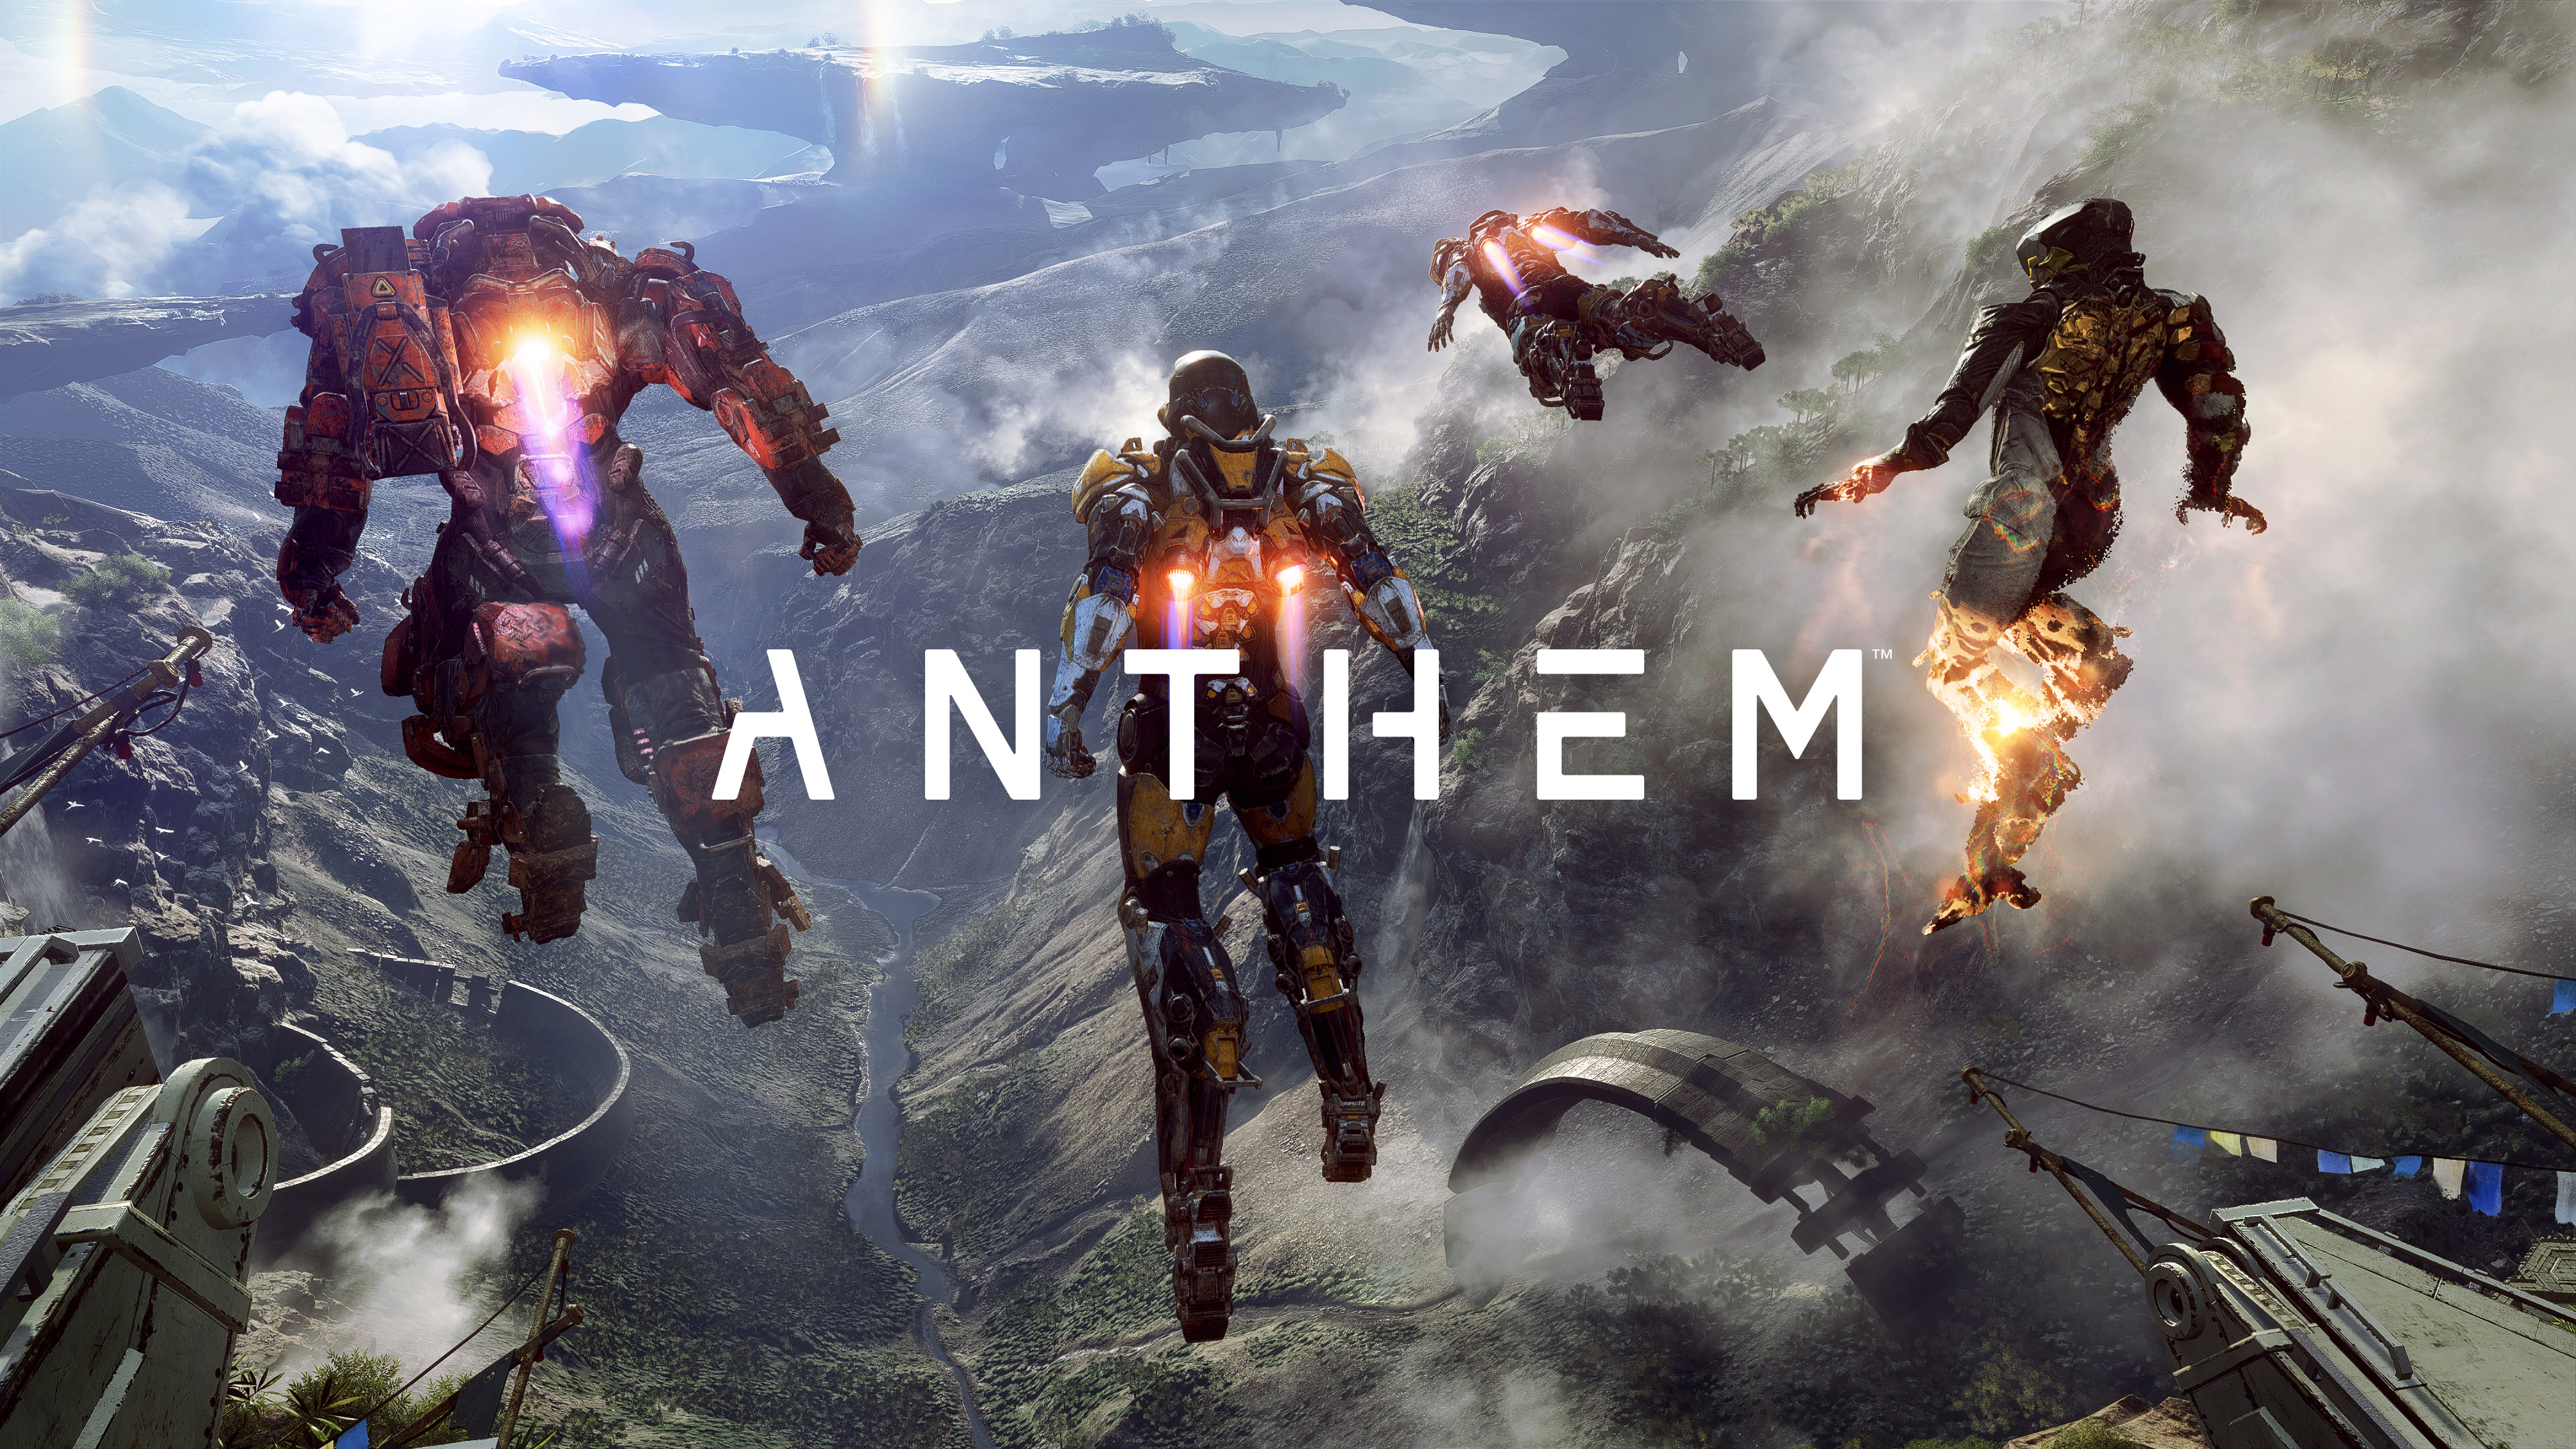 Anthem hd games 4k wallpapers images backgrounds - 4k wallpapers games ...